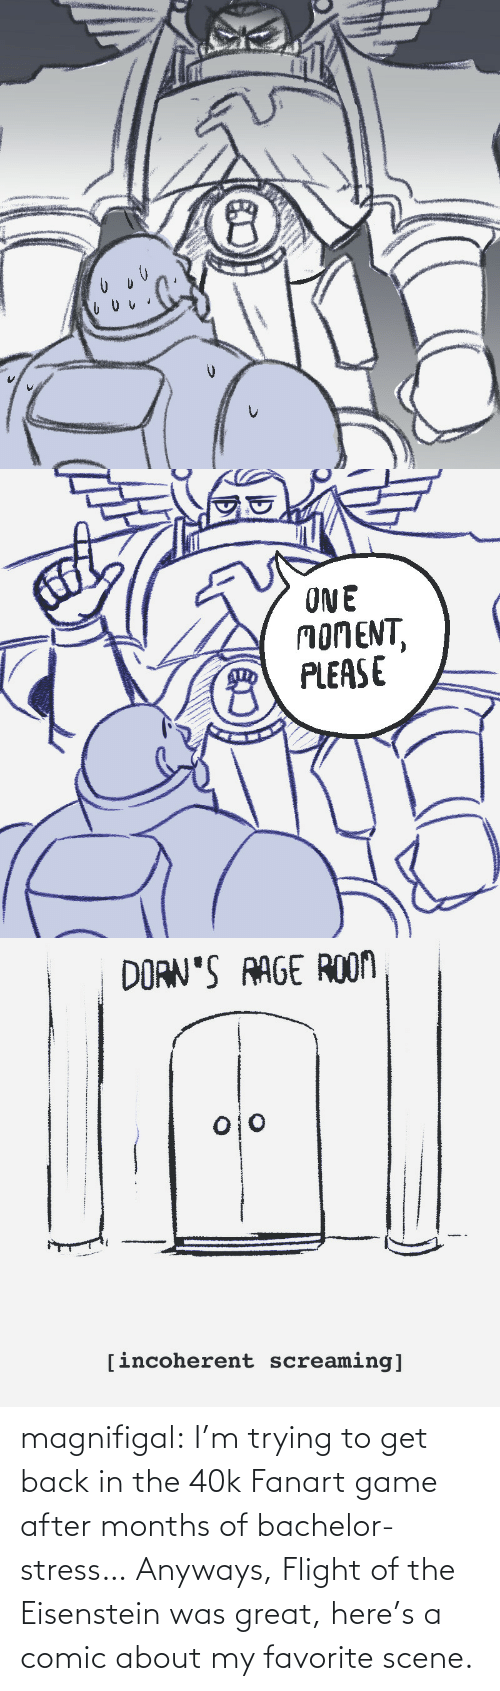 stress: magnifigal:  I'm trying to get back in the 40k Fanart game after months of bachelor-stress… Anyways, Flight of the Eisenstein was great, here's a comic about my favorite scene.